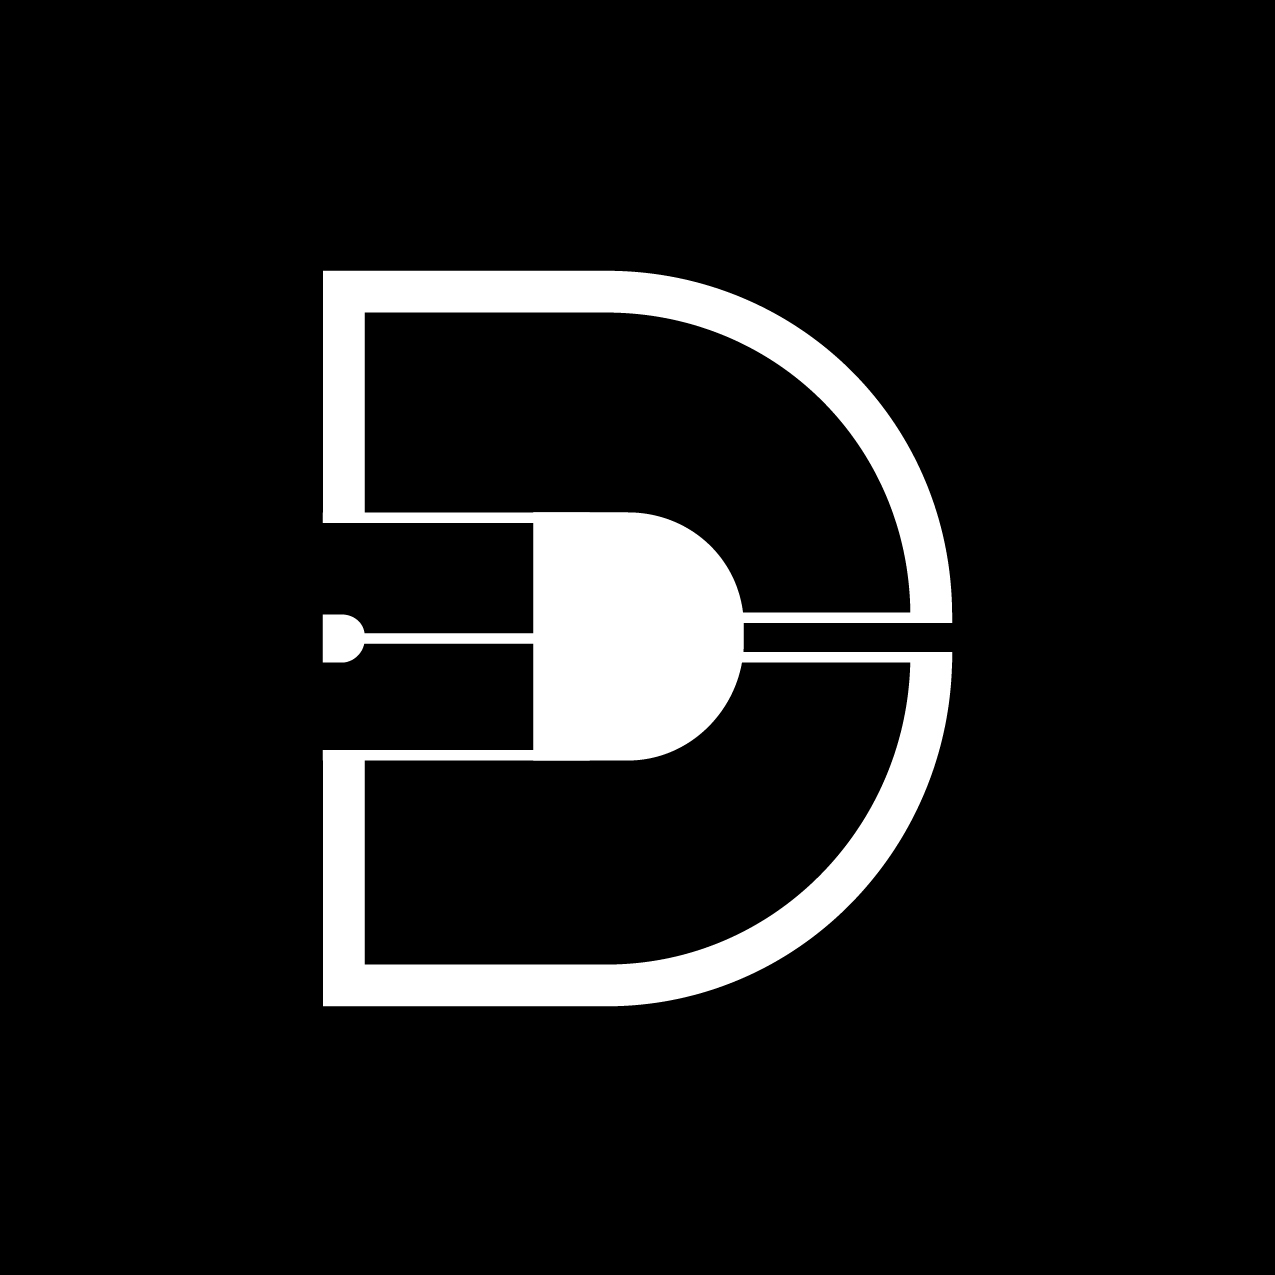 Letter D14 design by Furia